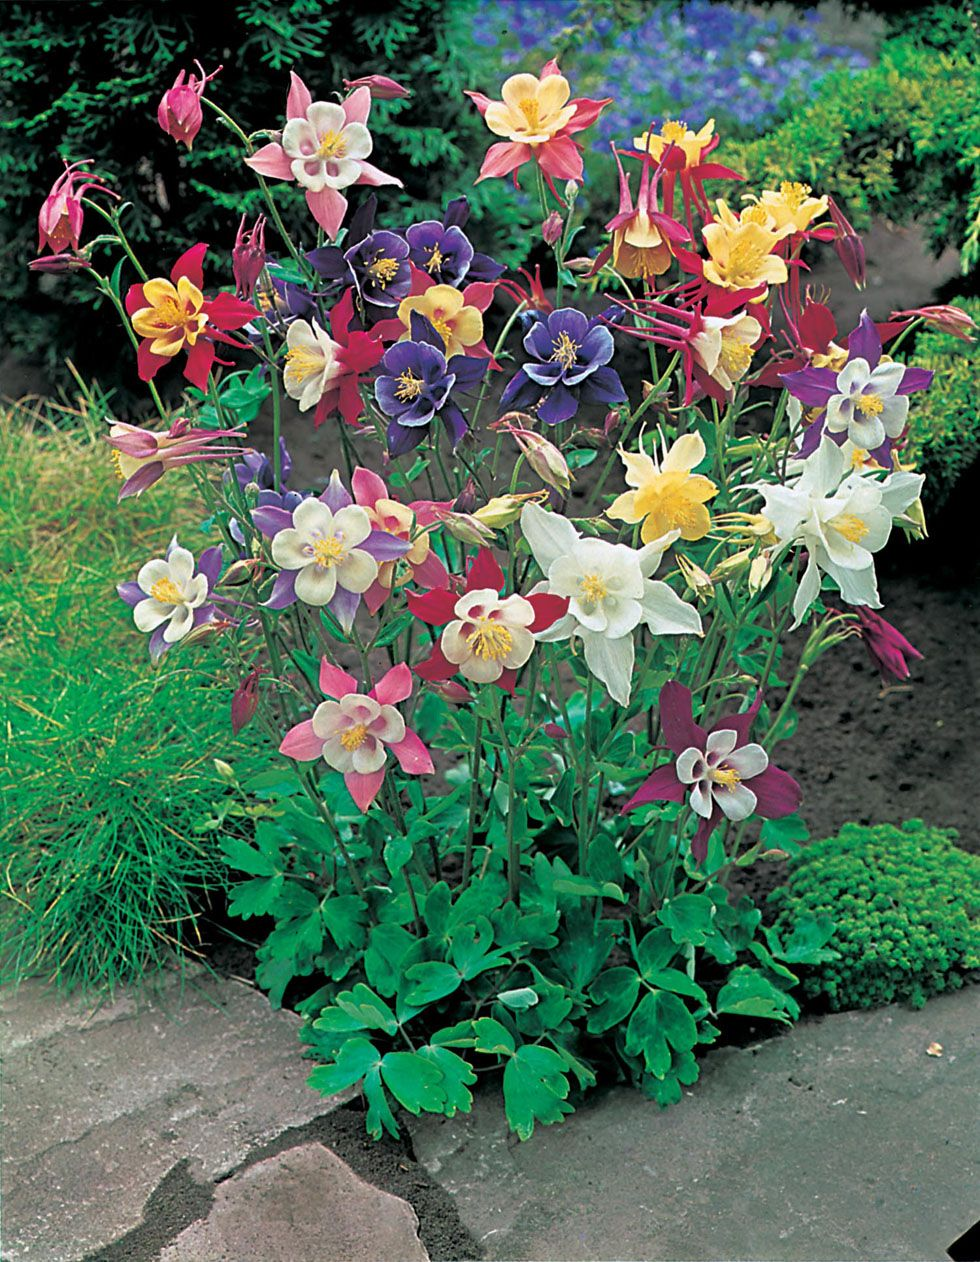 columbine aquilegia mckana giant 2 39 tall and 1 39 wide blooms may july bed 1 house border. Black Bedroom Furniture Sets. Home Design Ideas